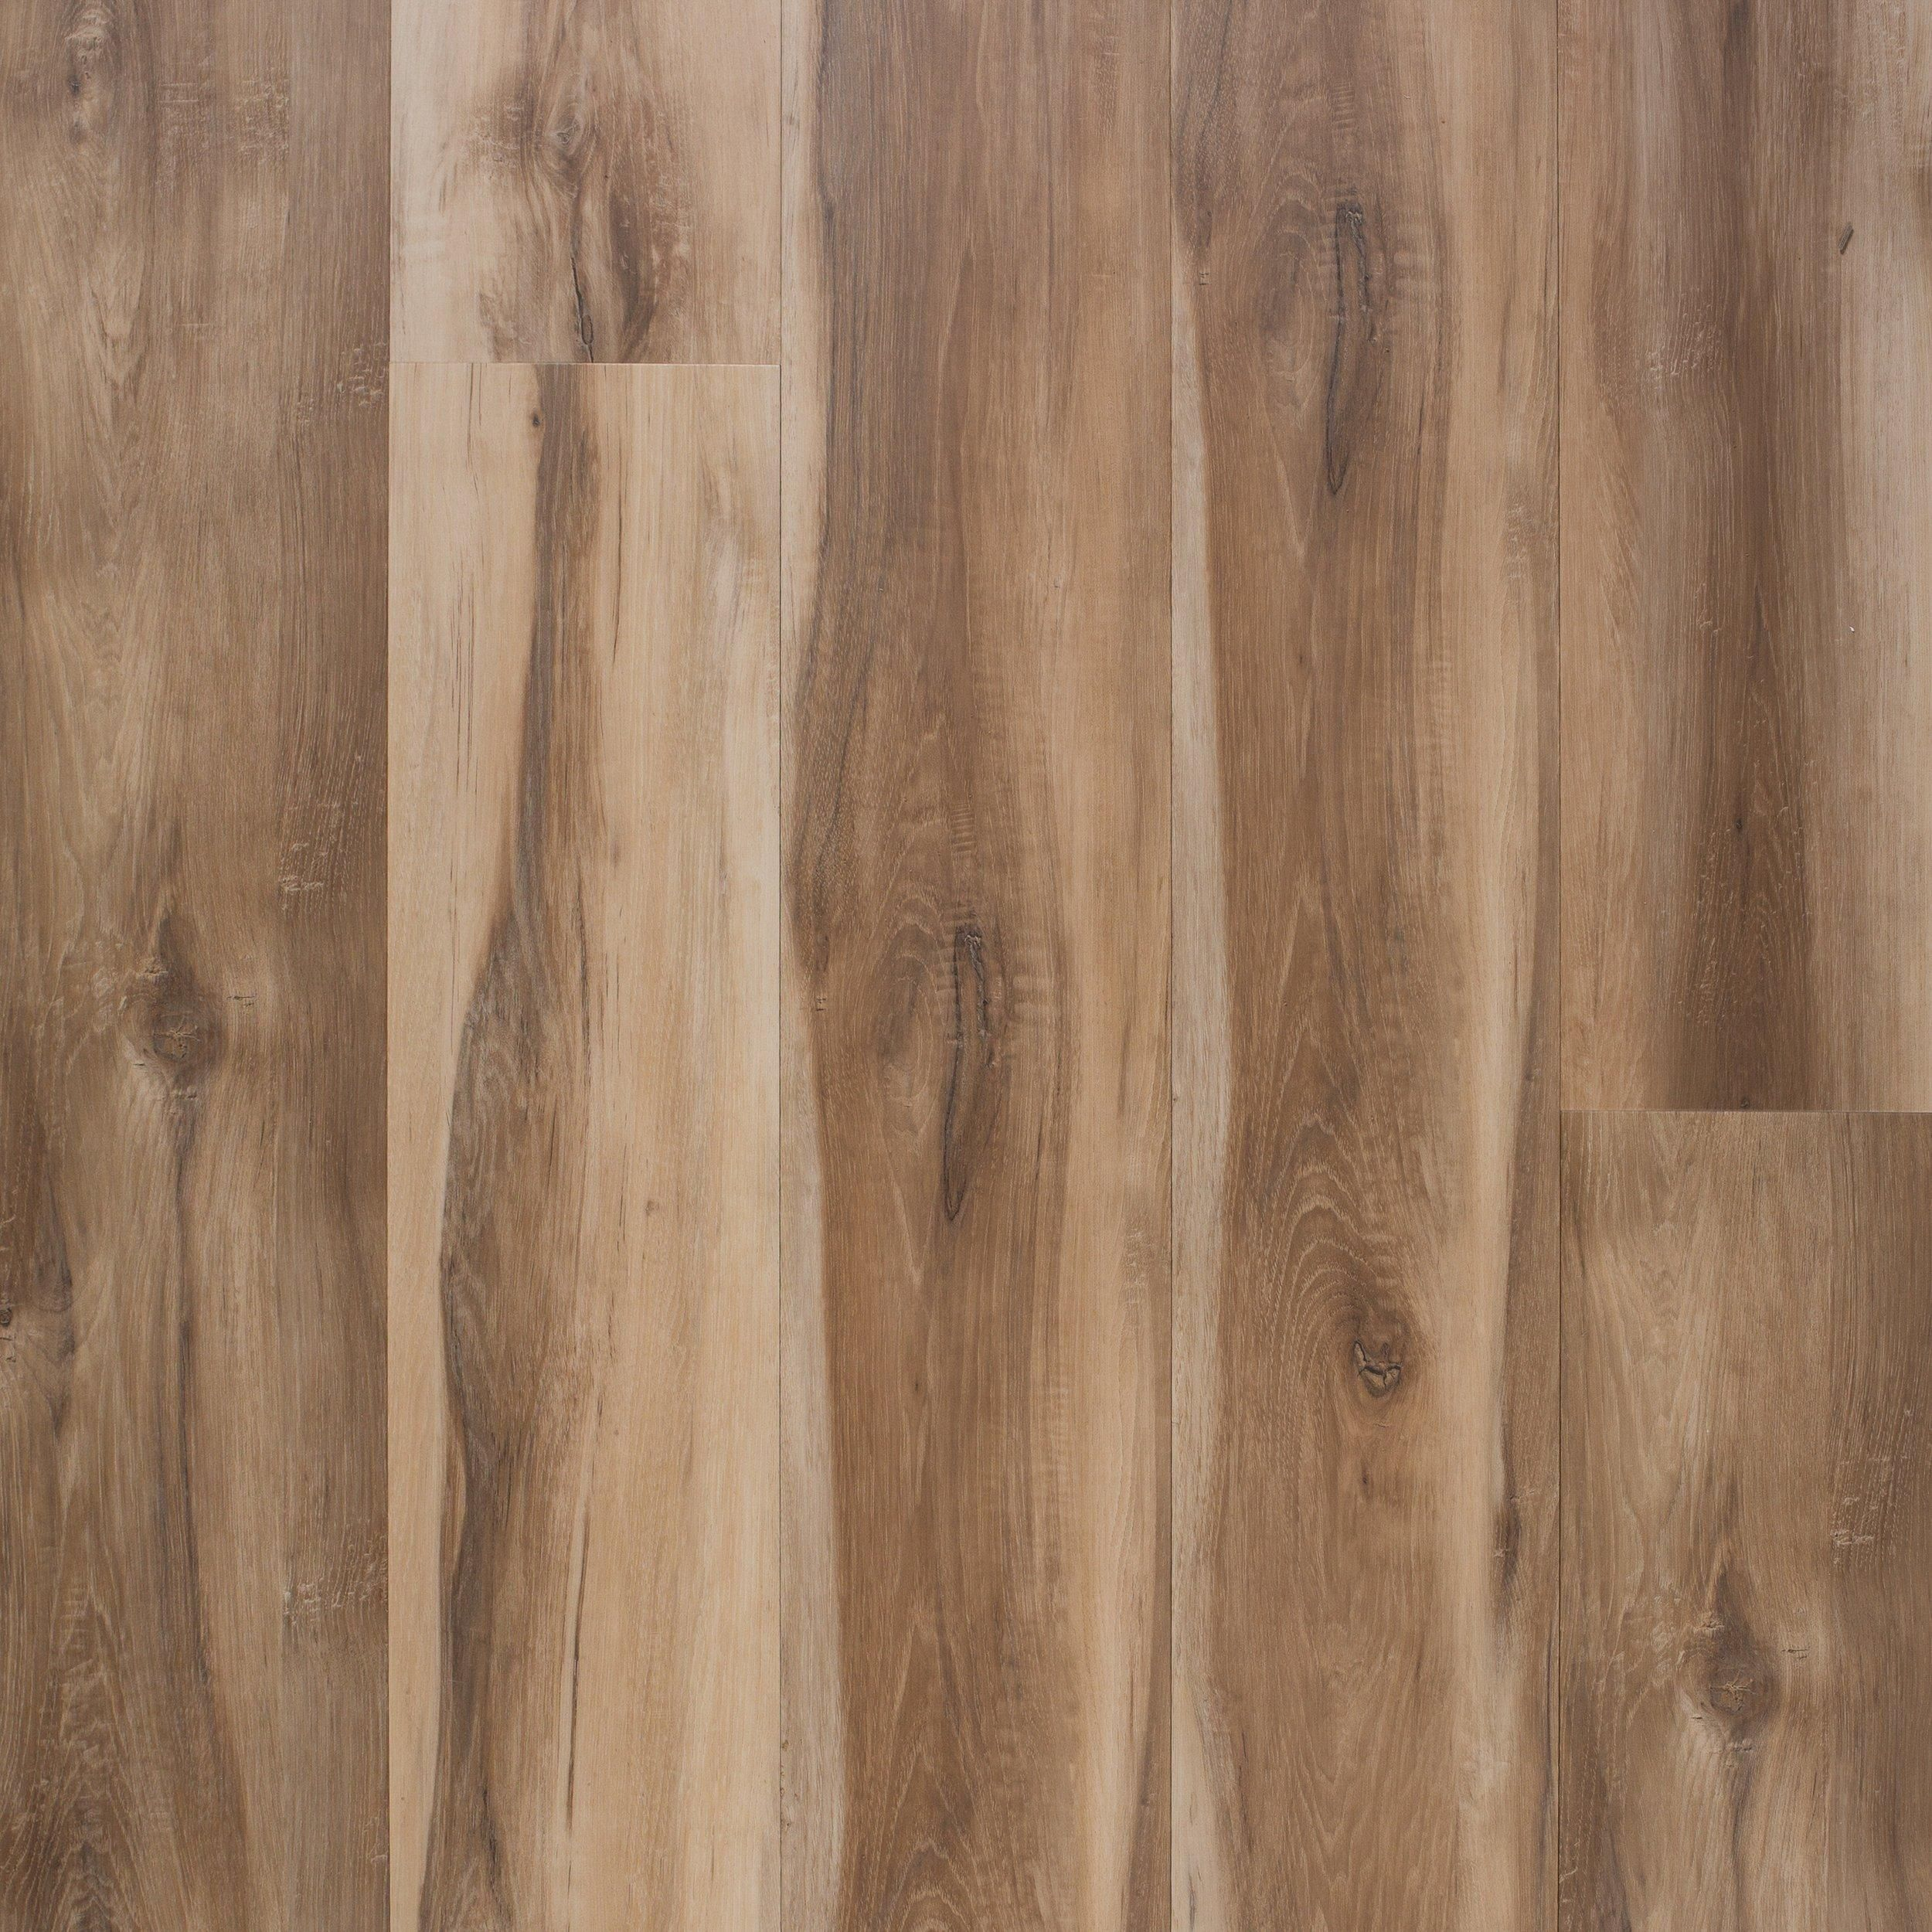 Spalted Oak Rigid Core Luxury Vinyl Plank Cork Back In 2020 Luxury Vinyl Plank Vinyl Plank Vinyl Plank Flooring